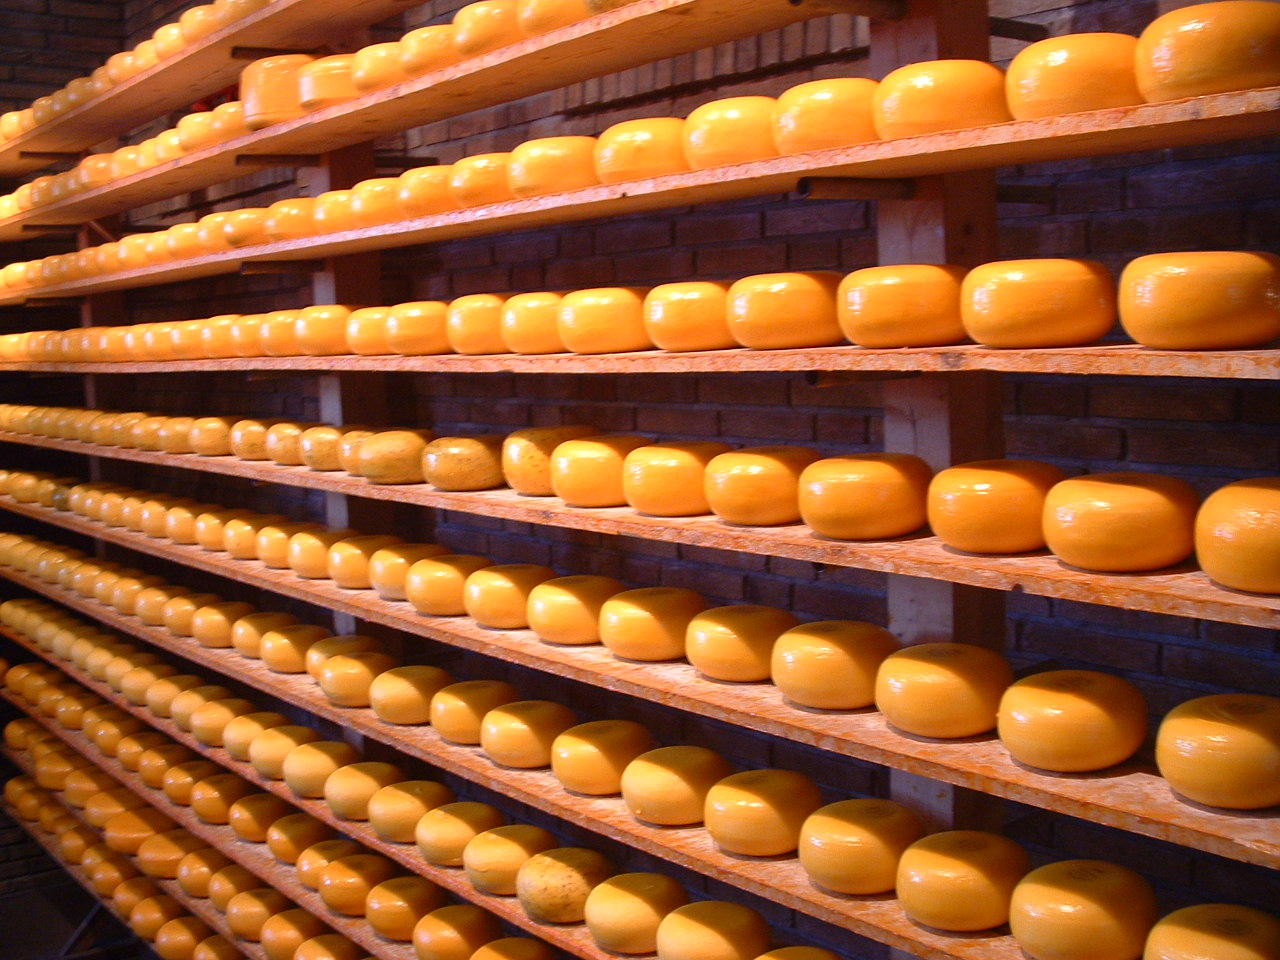 Shelves with gouda cheese, Photo: Kevin Connors